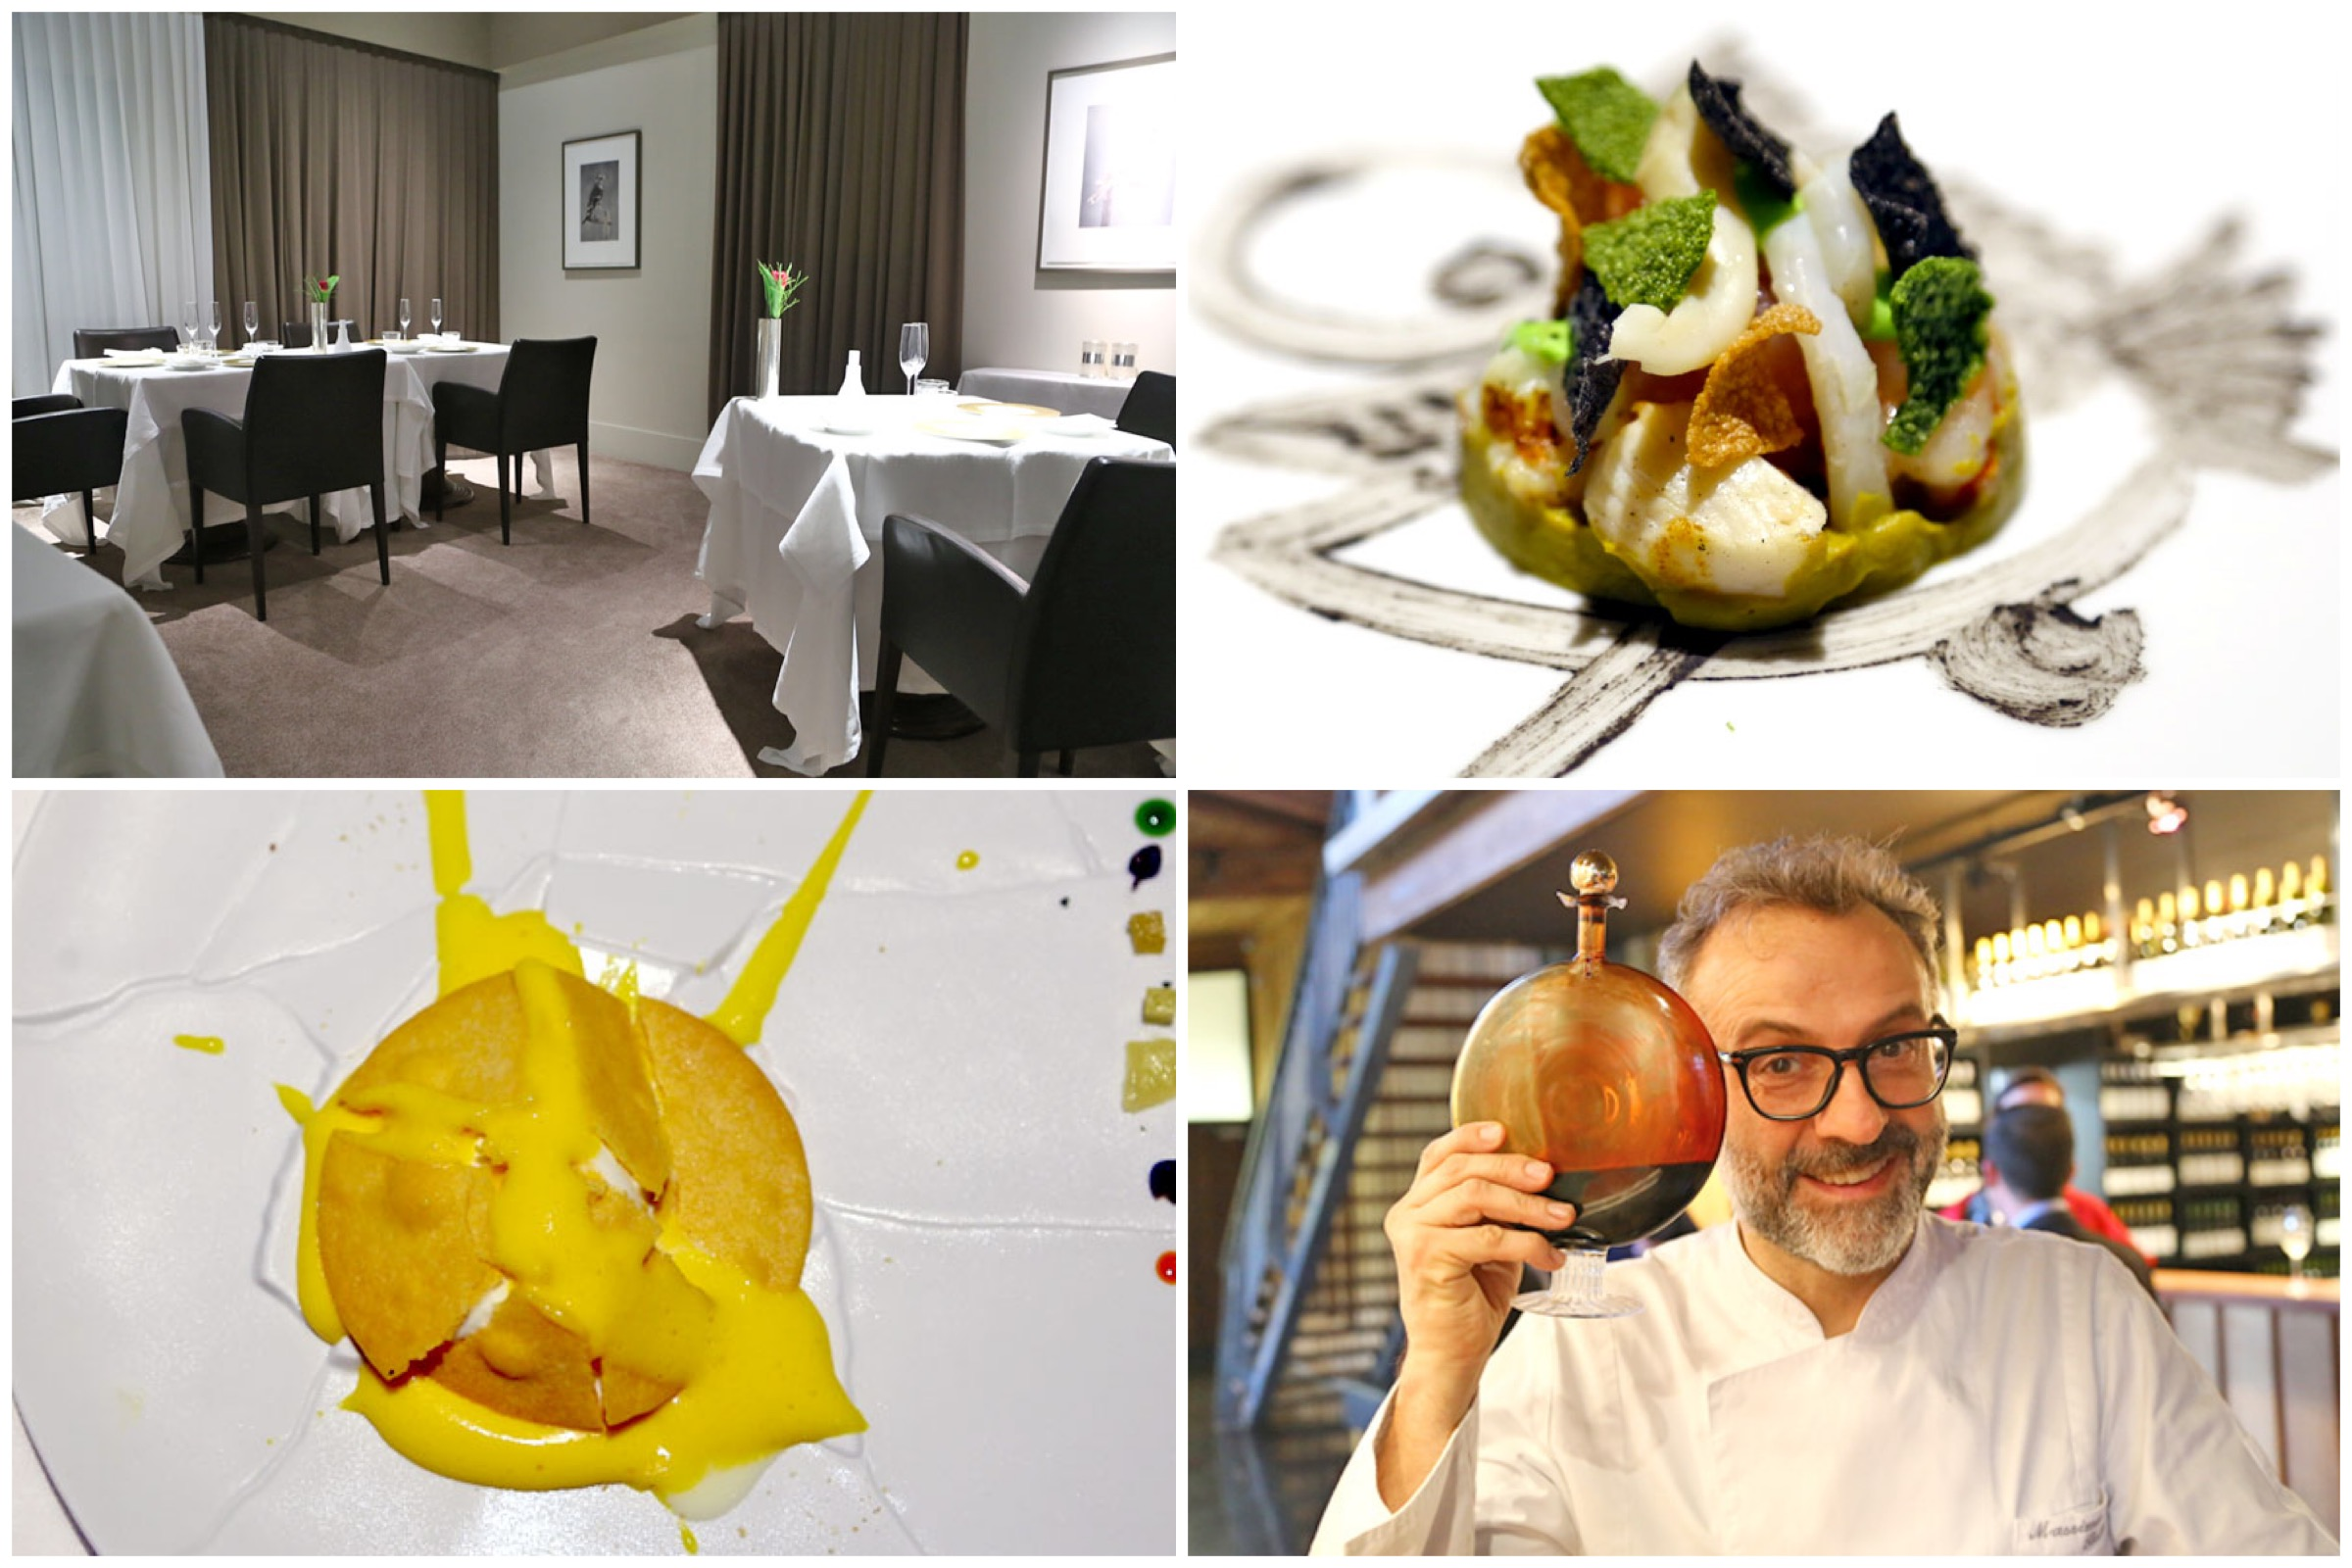 Osteria Francescana - The World's Best Restaurant 2018 and Best Restaurant In Europe, At Modena Italy